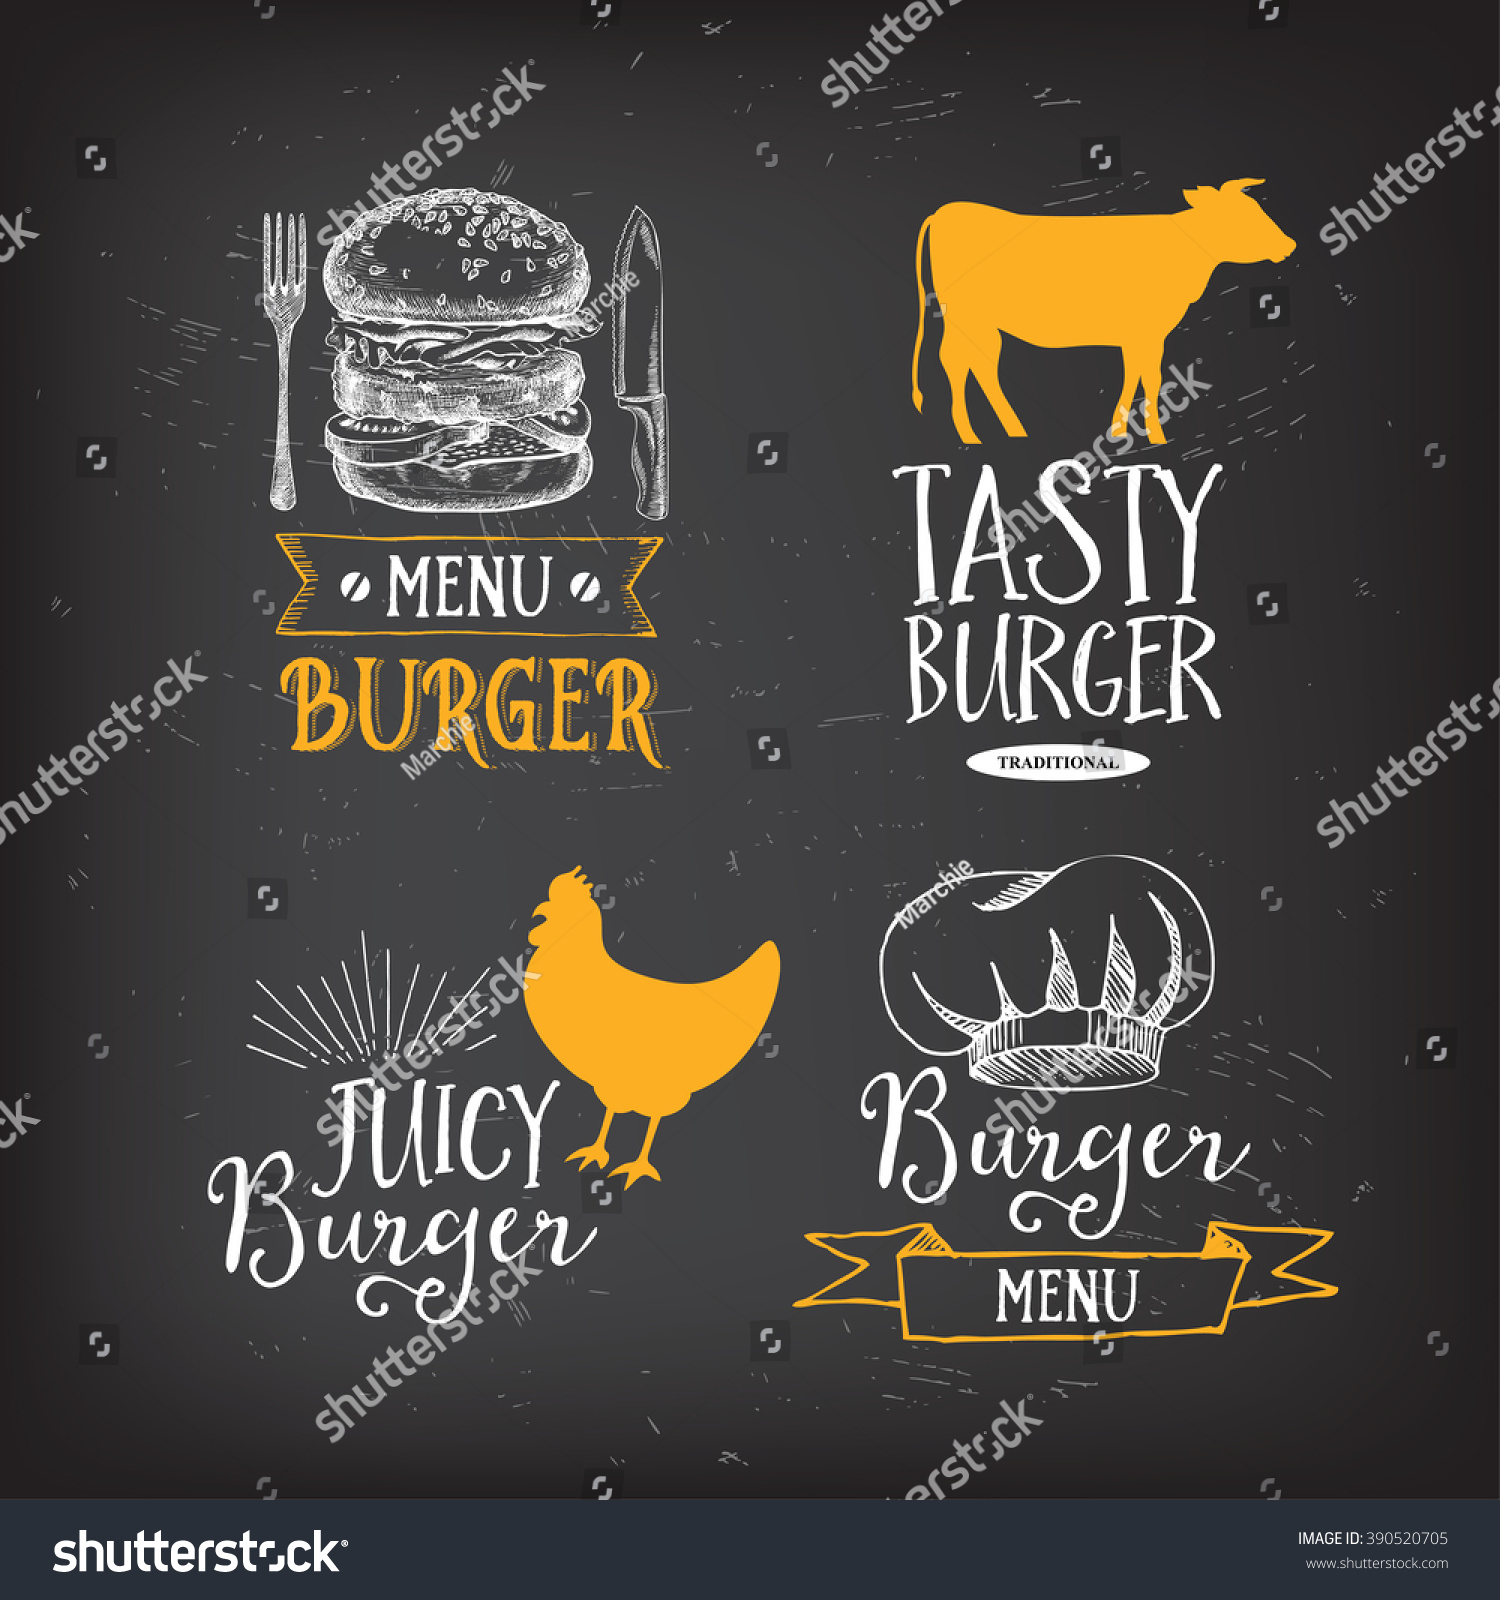 Burger menu restaurant badges Food design icons with hand-drawing elements Graphic labels for fast food restaurant template